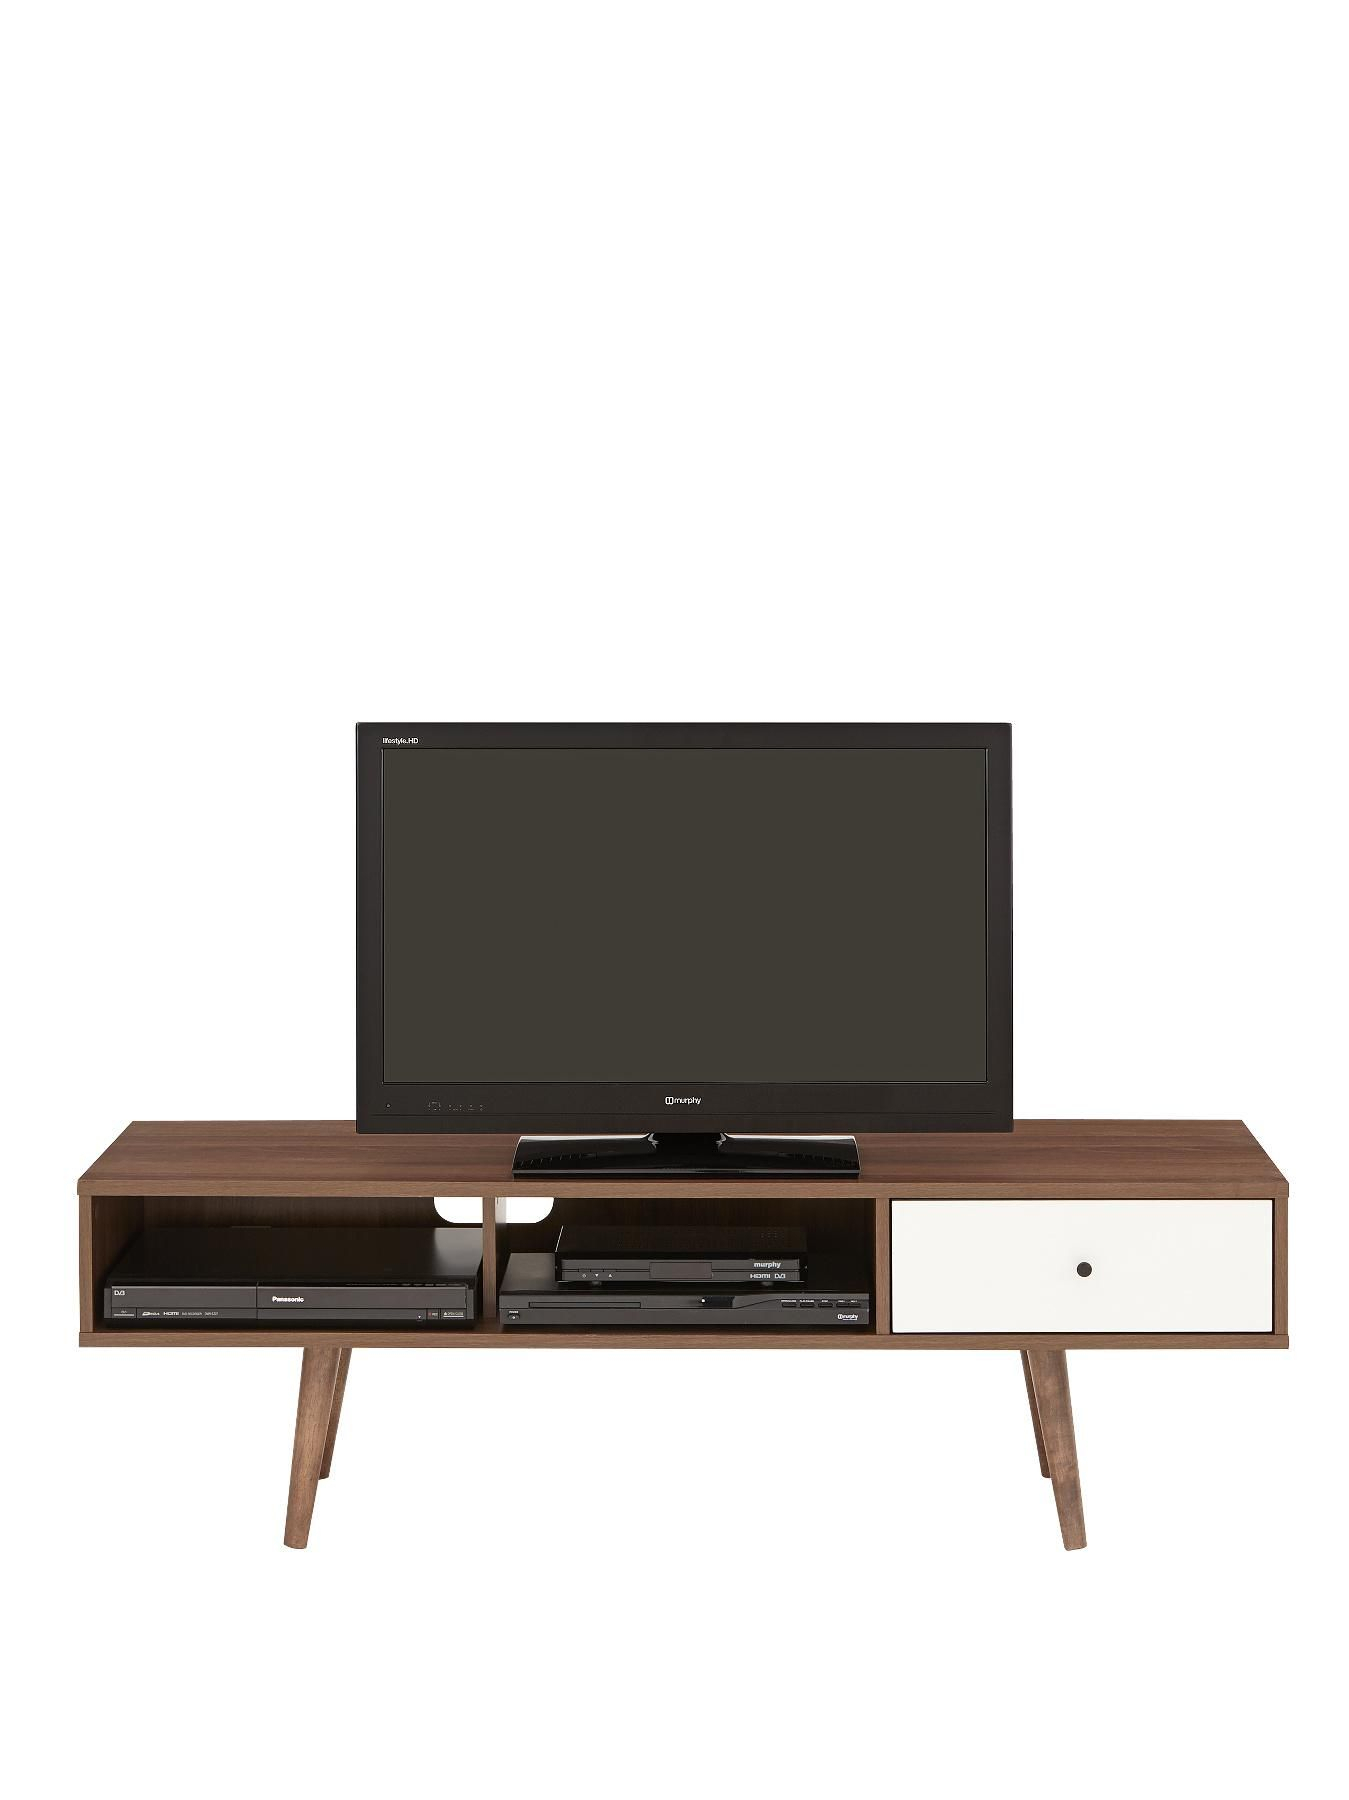 Monty Retro Tv Unit - Fits Up To 60 Inch Tv | Living Room for Century White 60 Inch Tv Stands (Image 19 of 30)